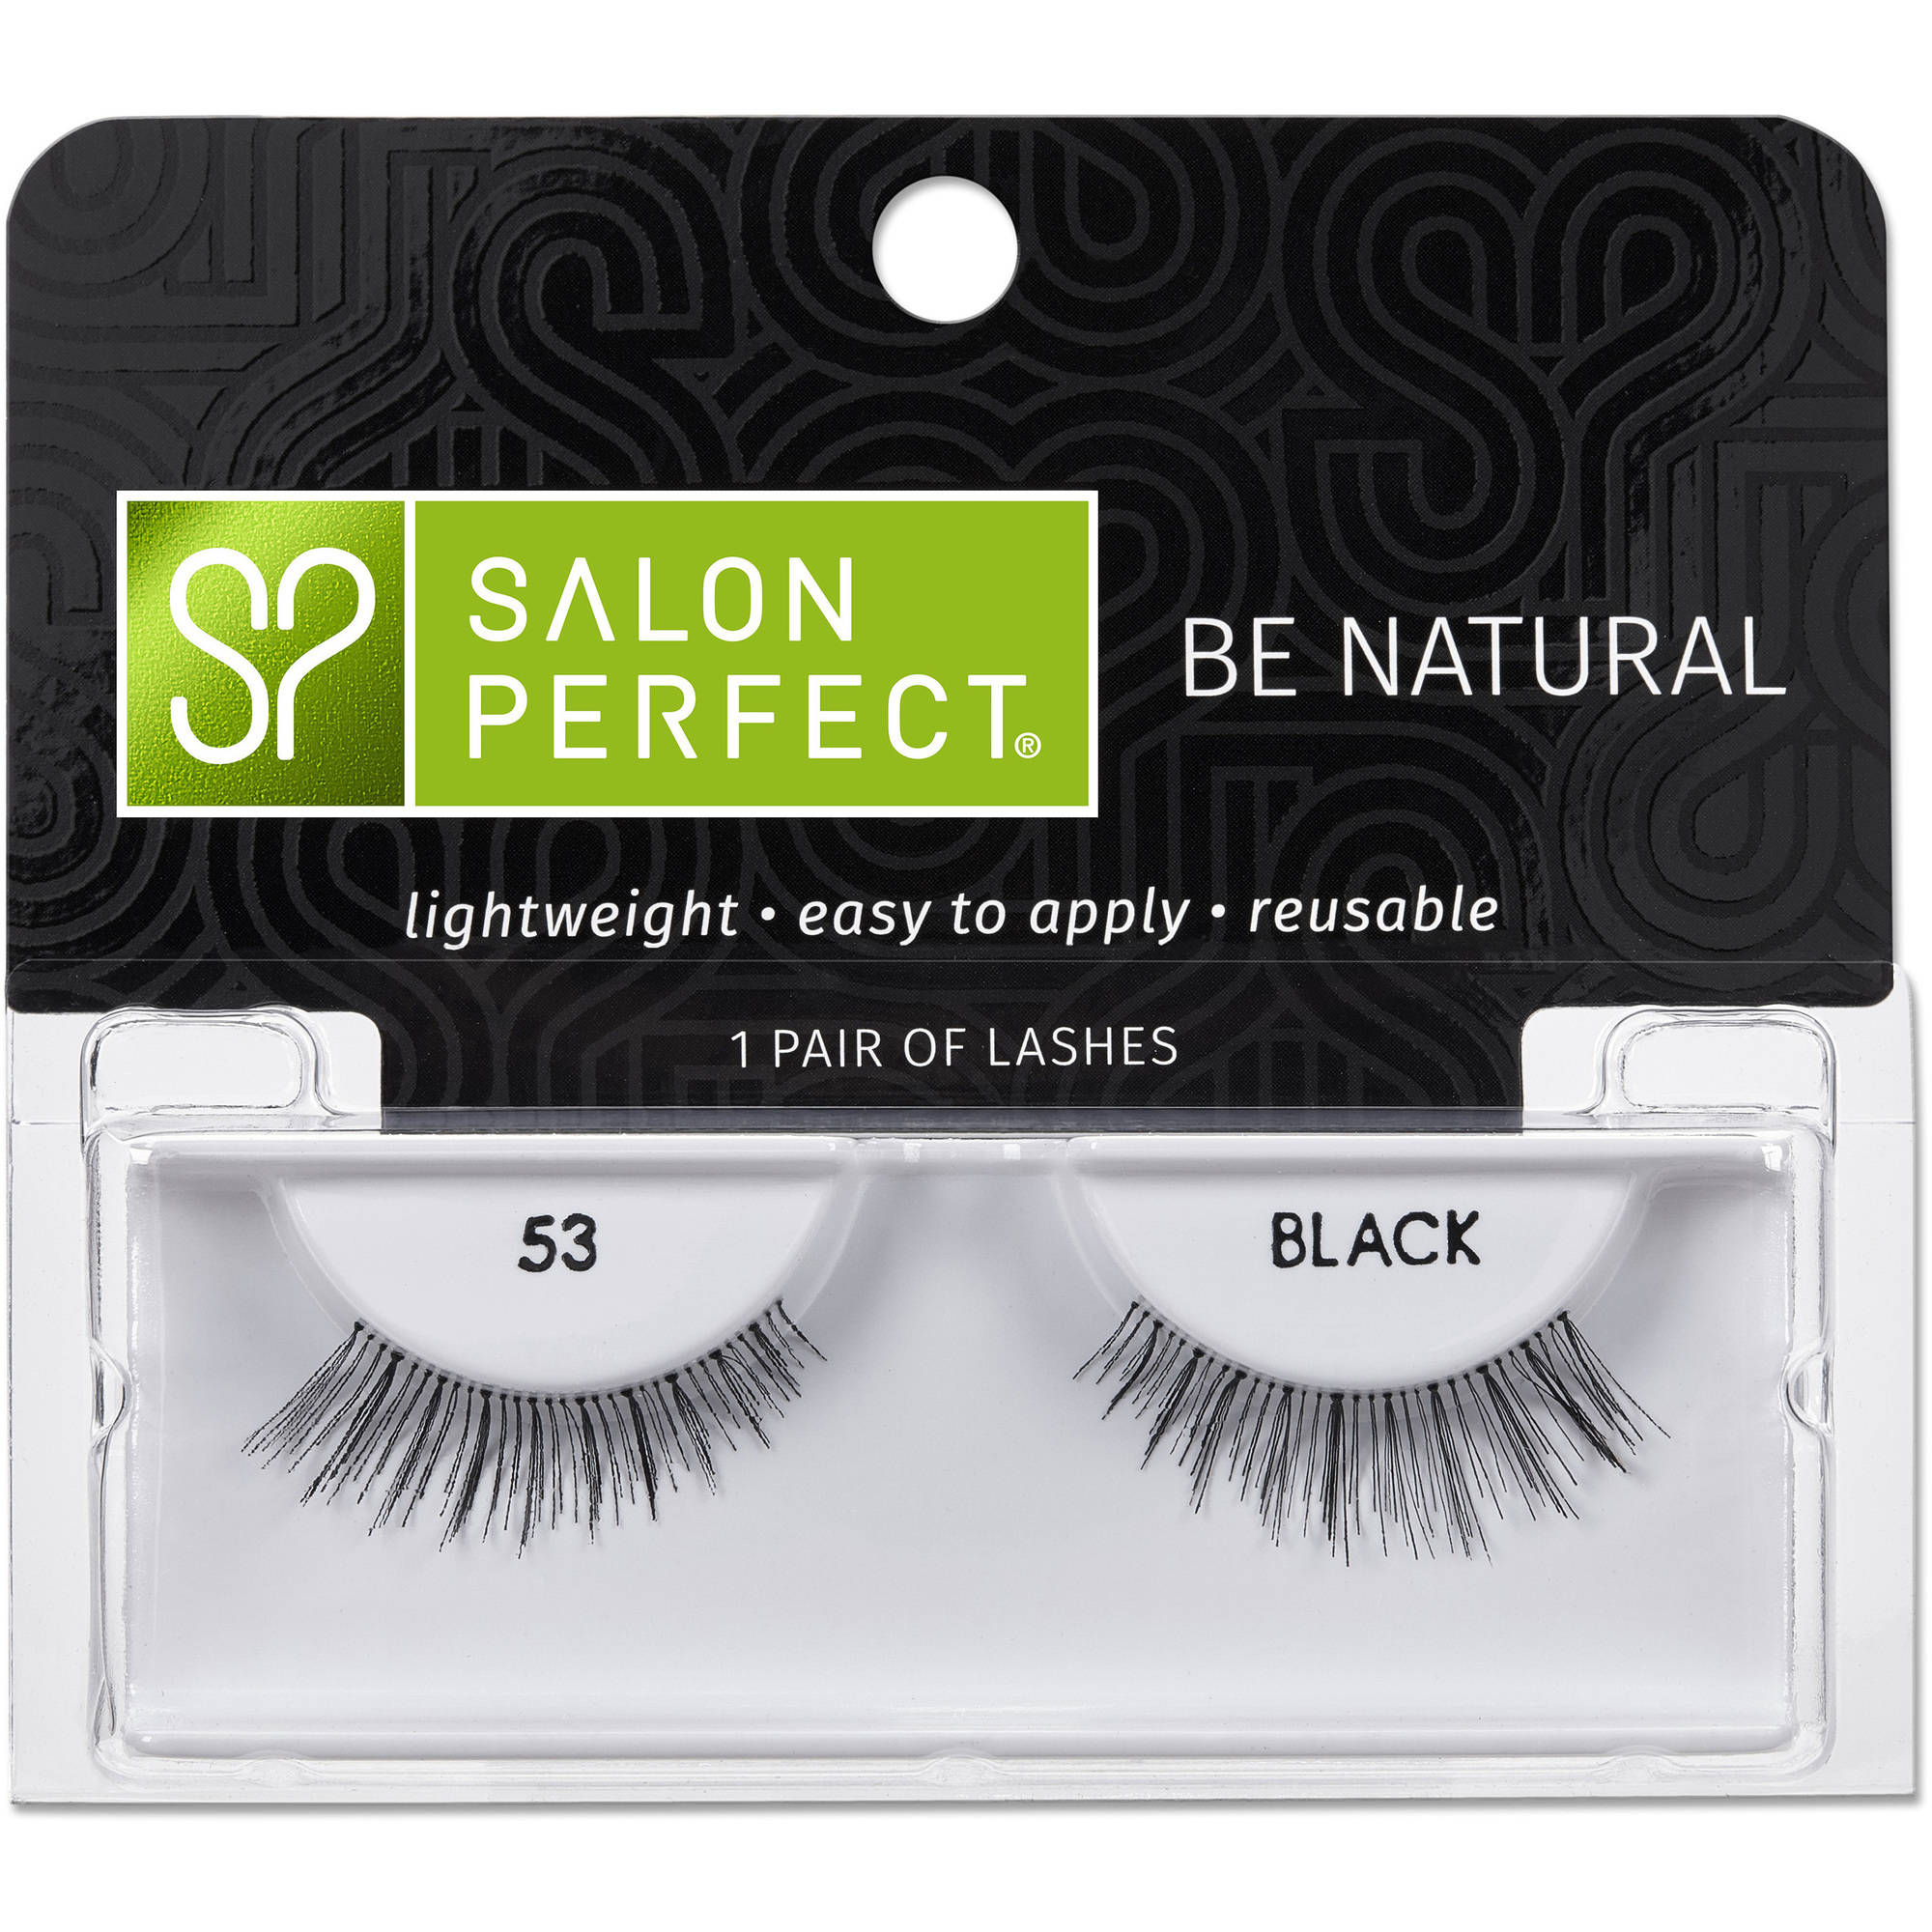 Salon Perfect Perfectly Natural Eyelashes, 53 Black, 1 pr